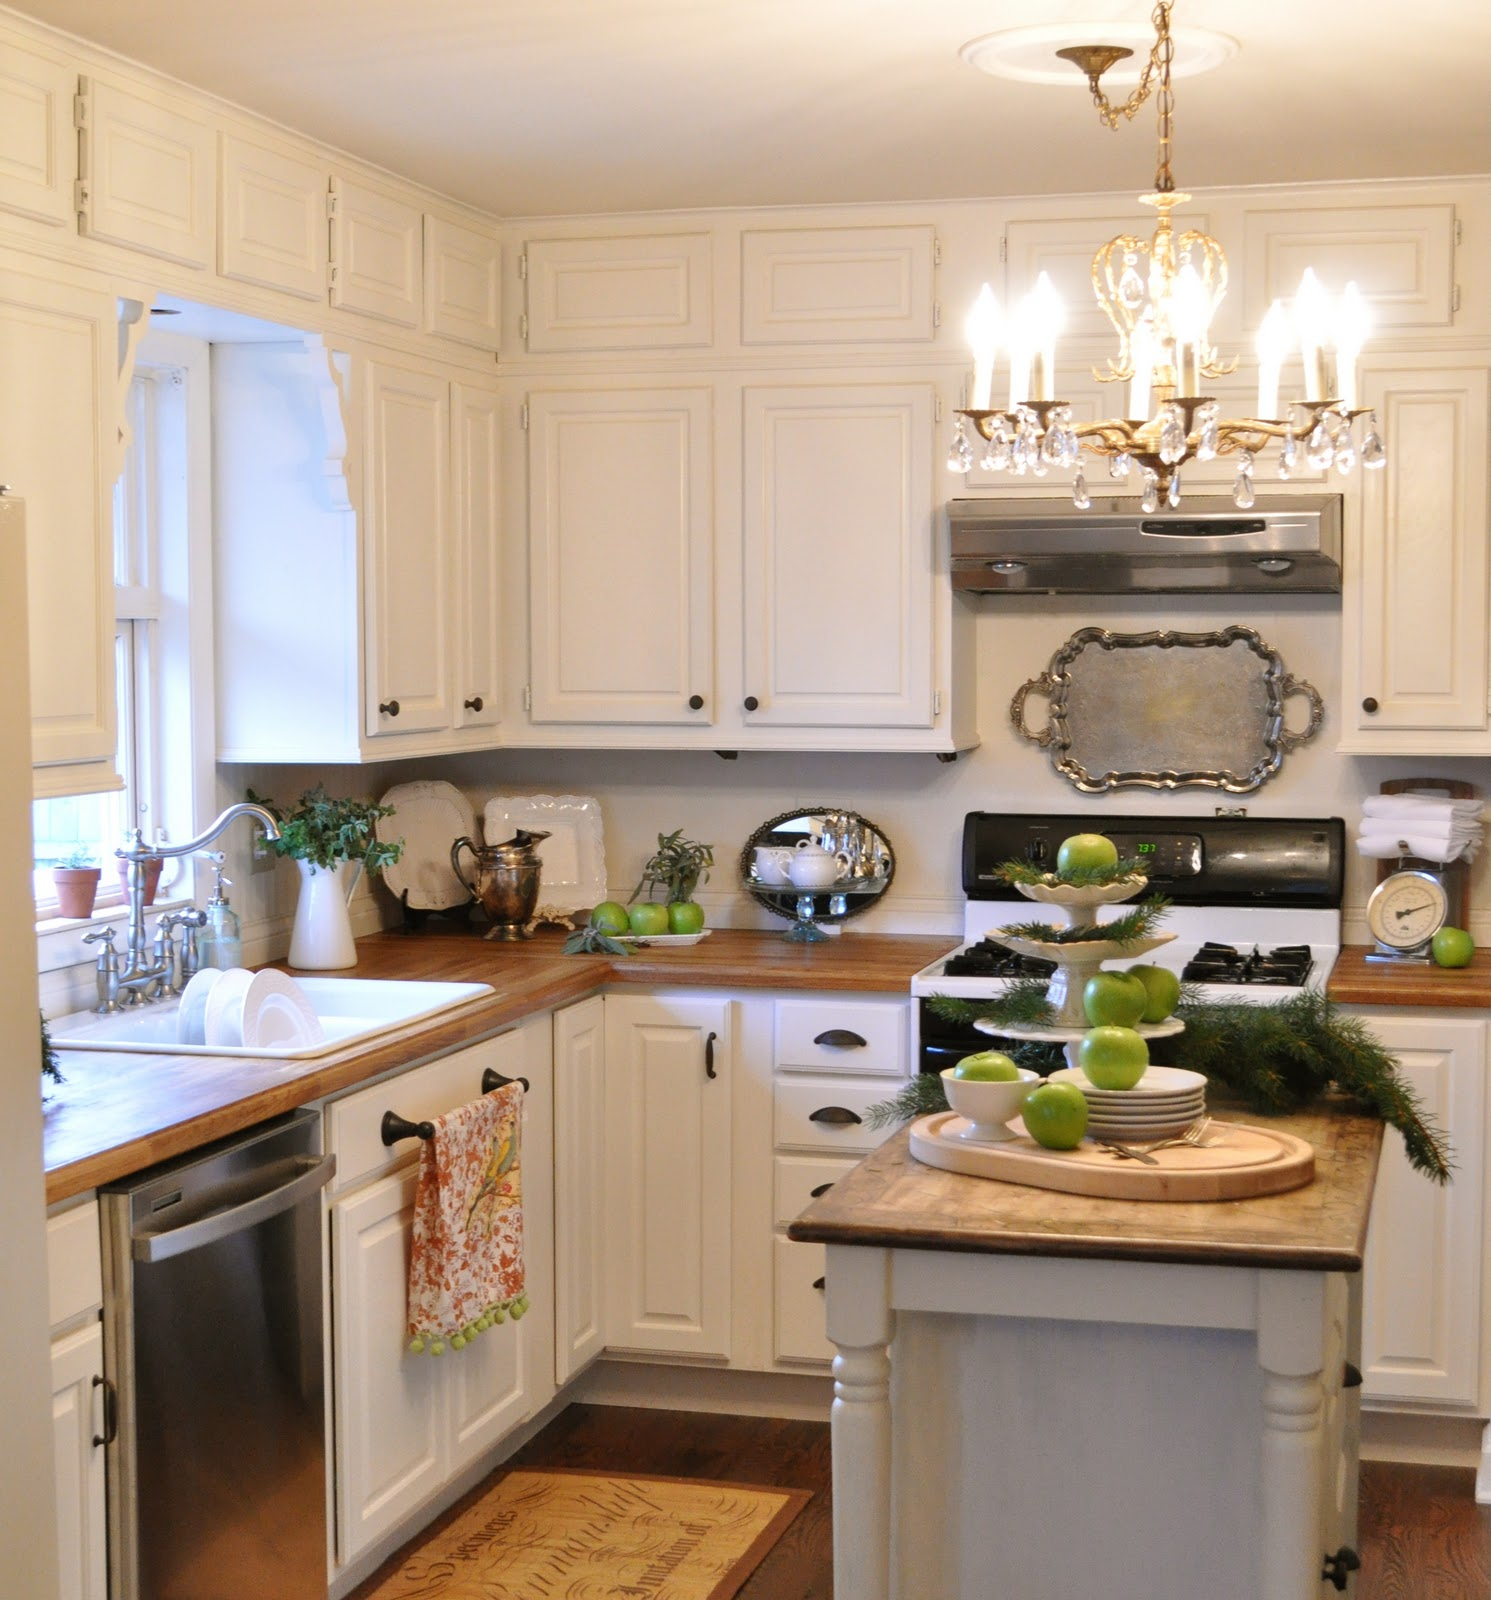 Material For Kitchen Cabinet: My Complete Kitchen Remodel Story For About $12,000